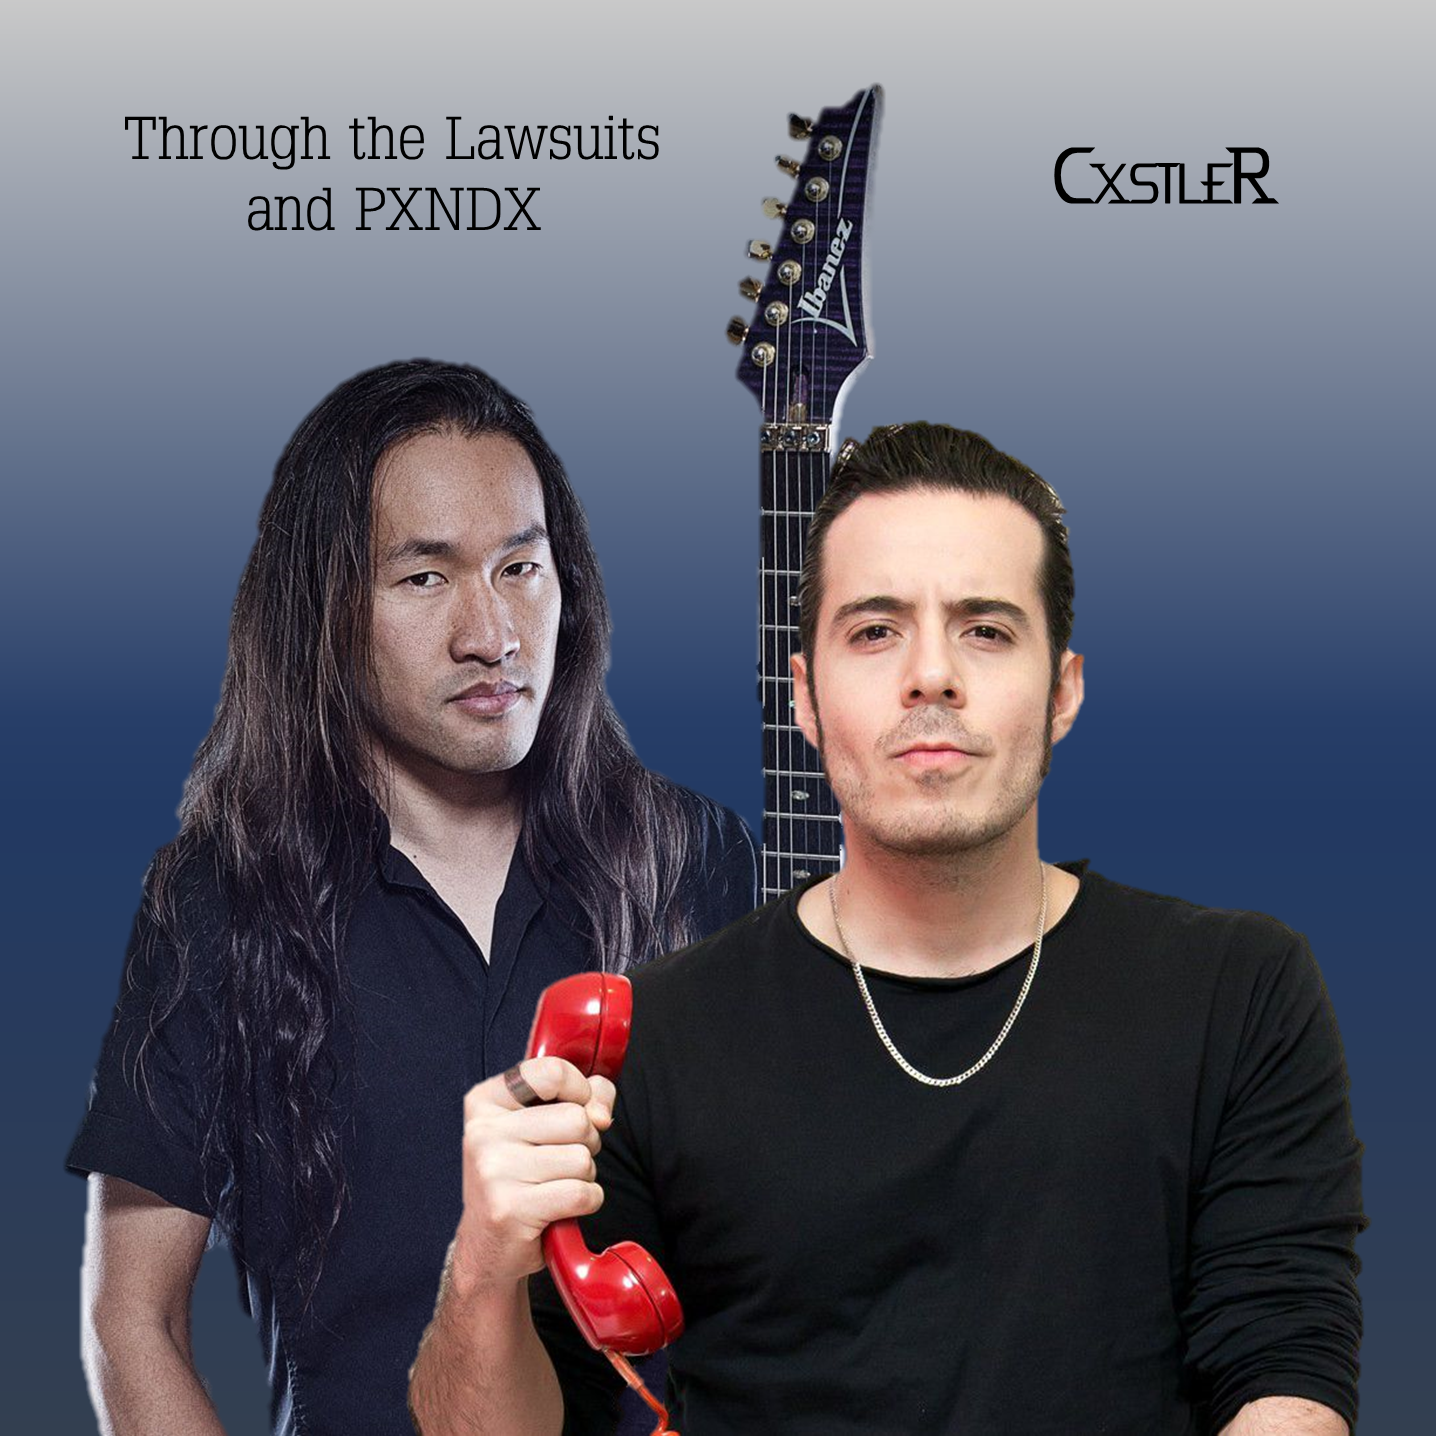 Through the Lawsuits and PXNDX